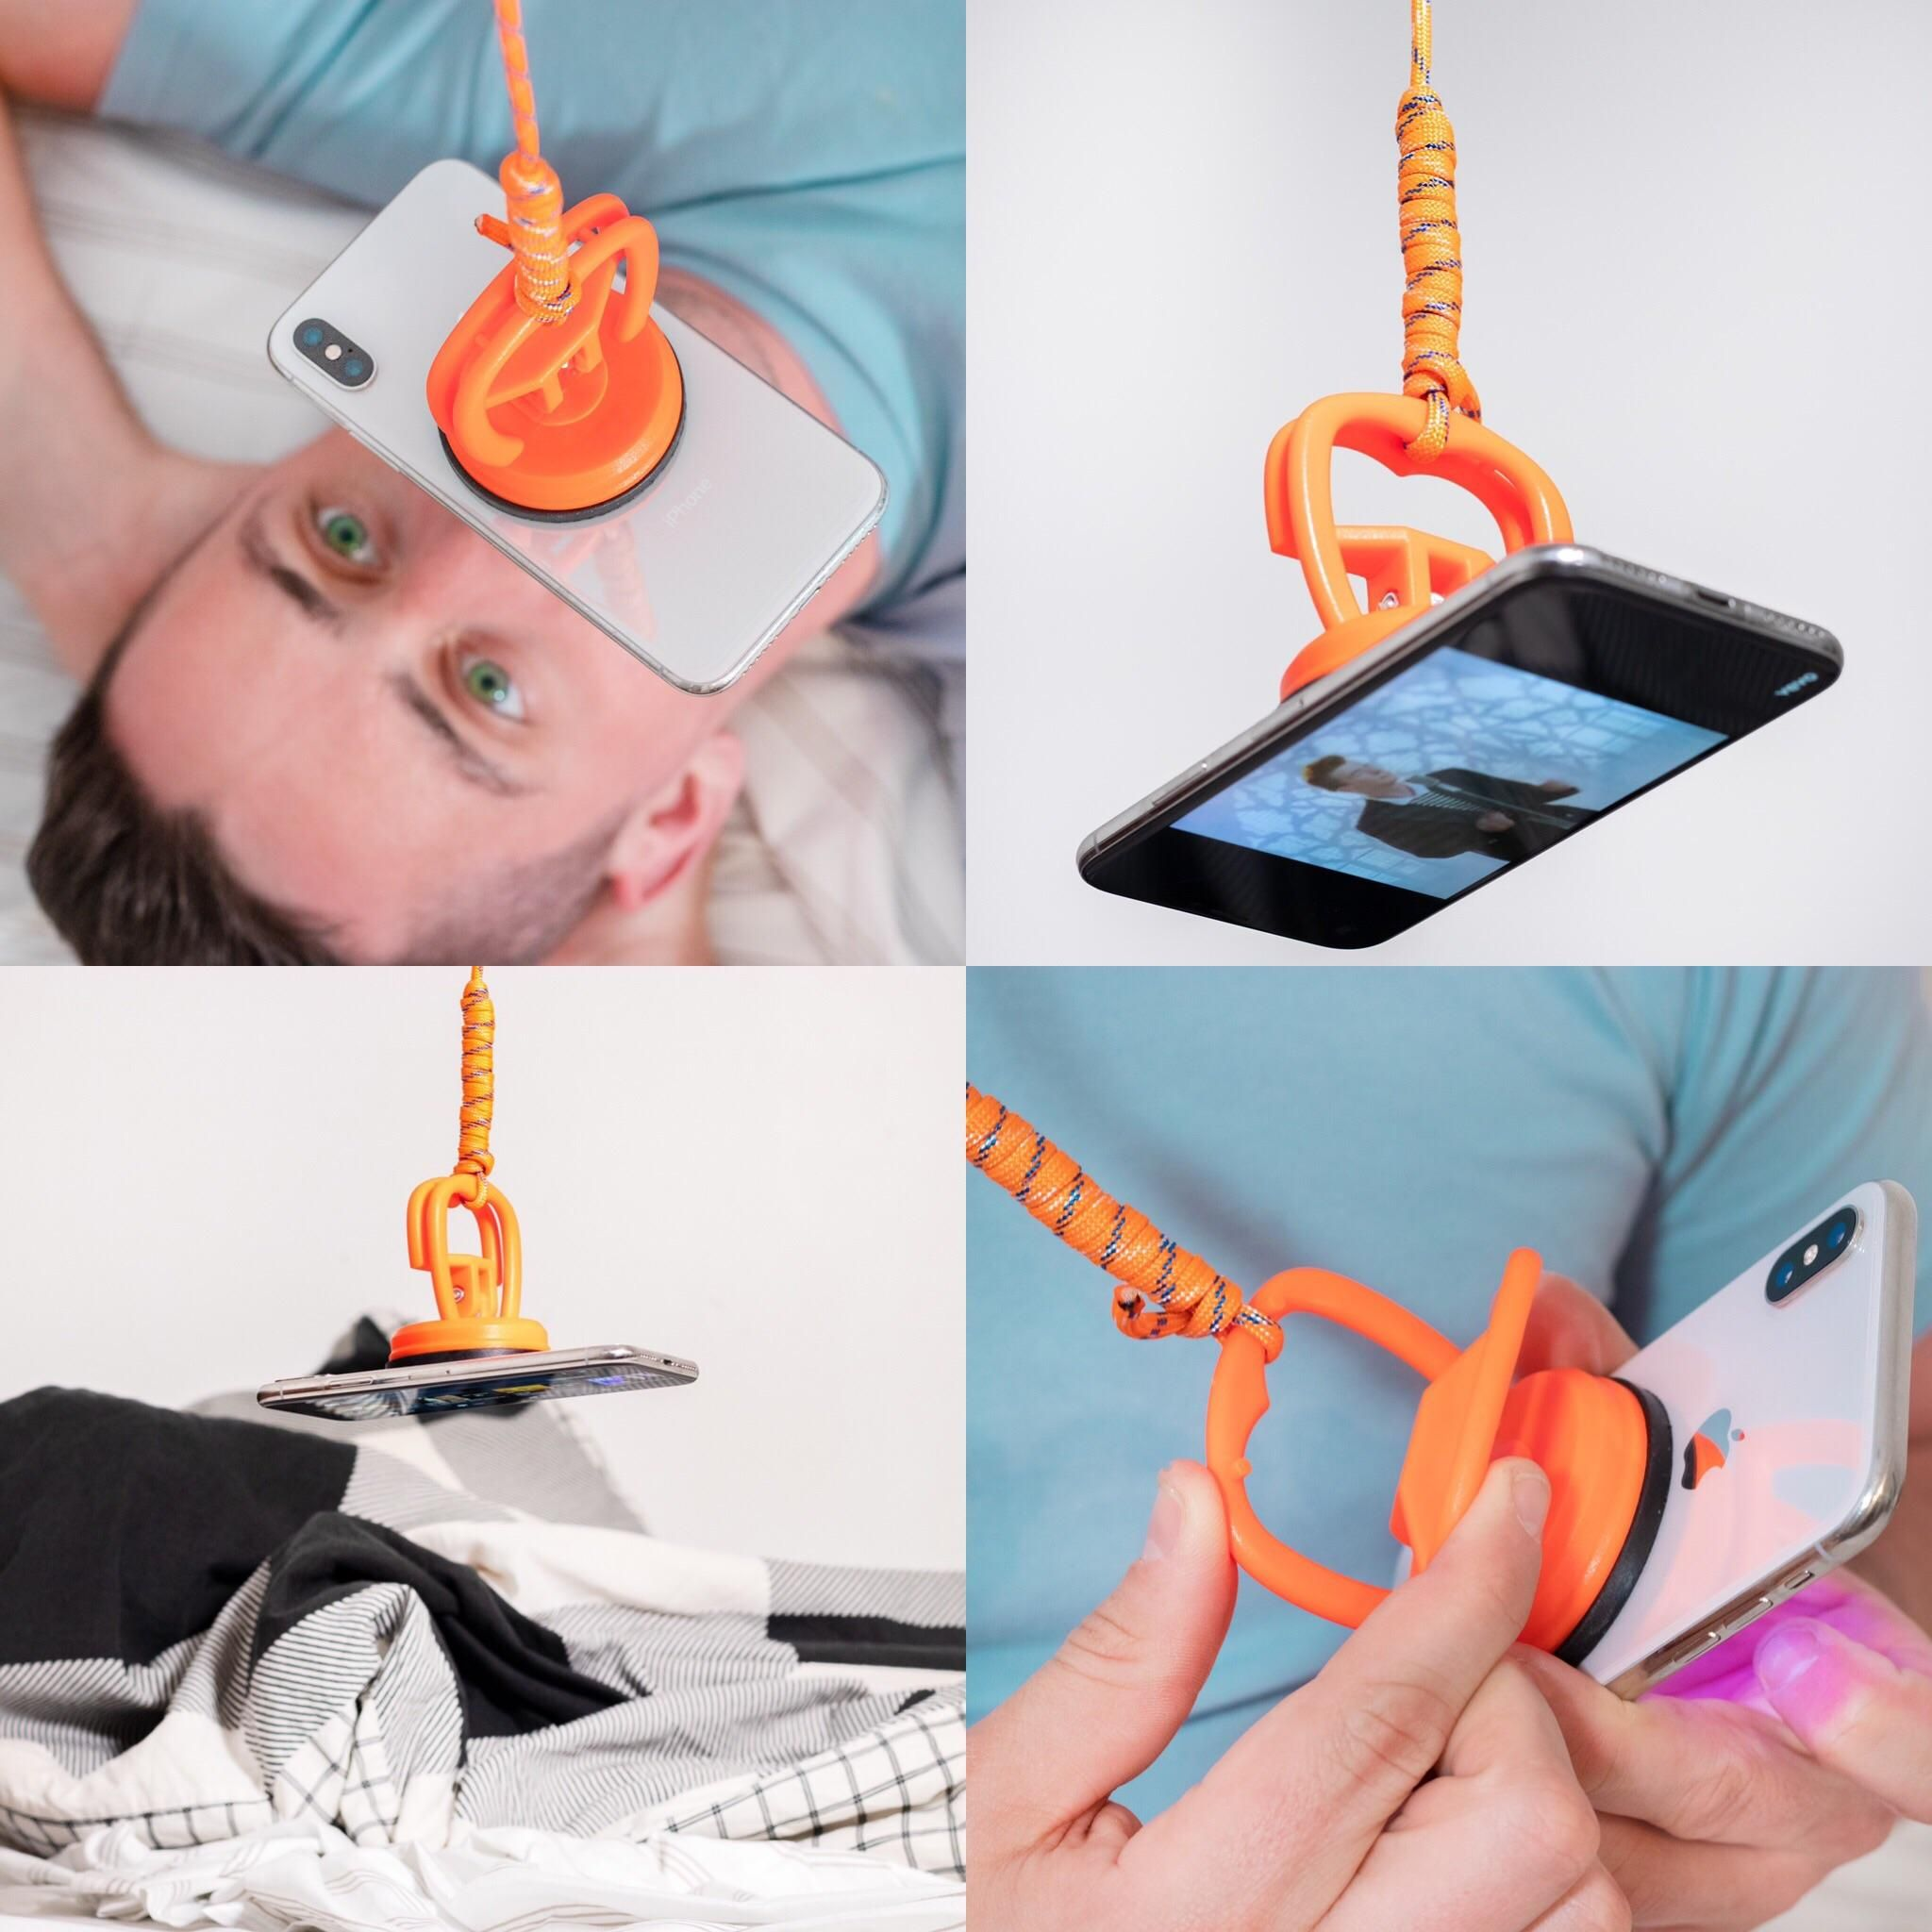 For fun I design fake products that solve problems in an unnecessary way. The iDangle is the hands free way to watch your phone inches from your face in bed.